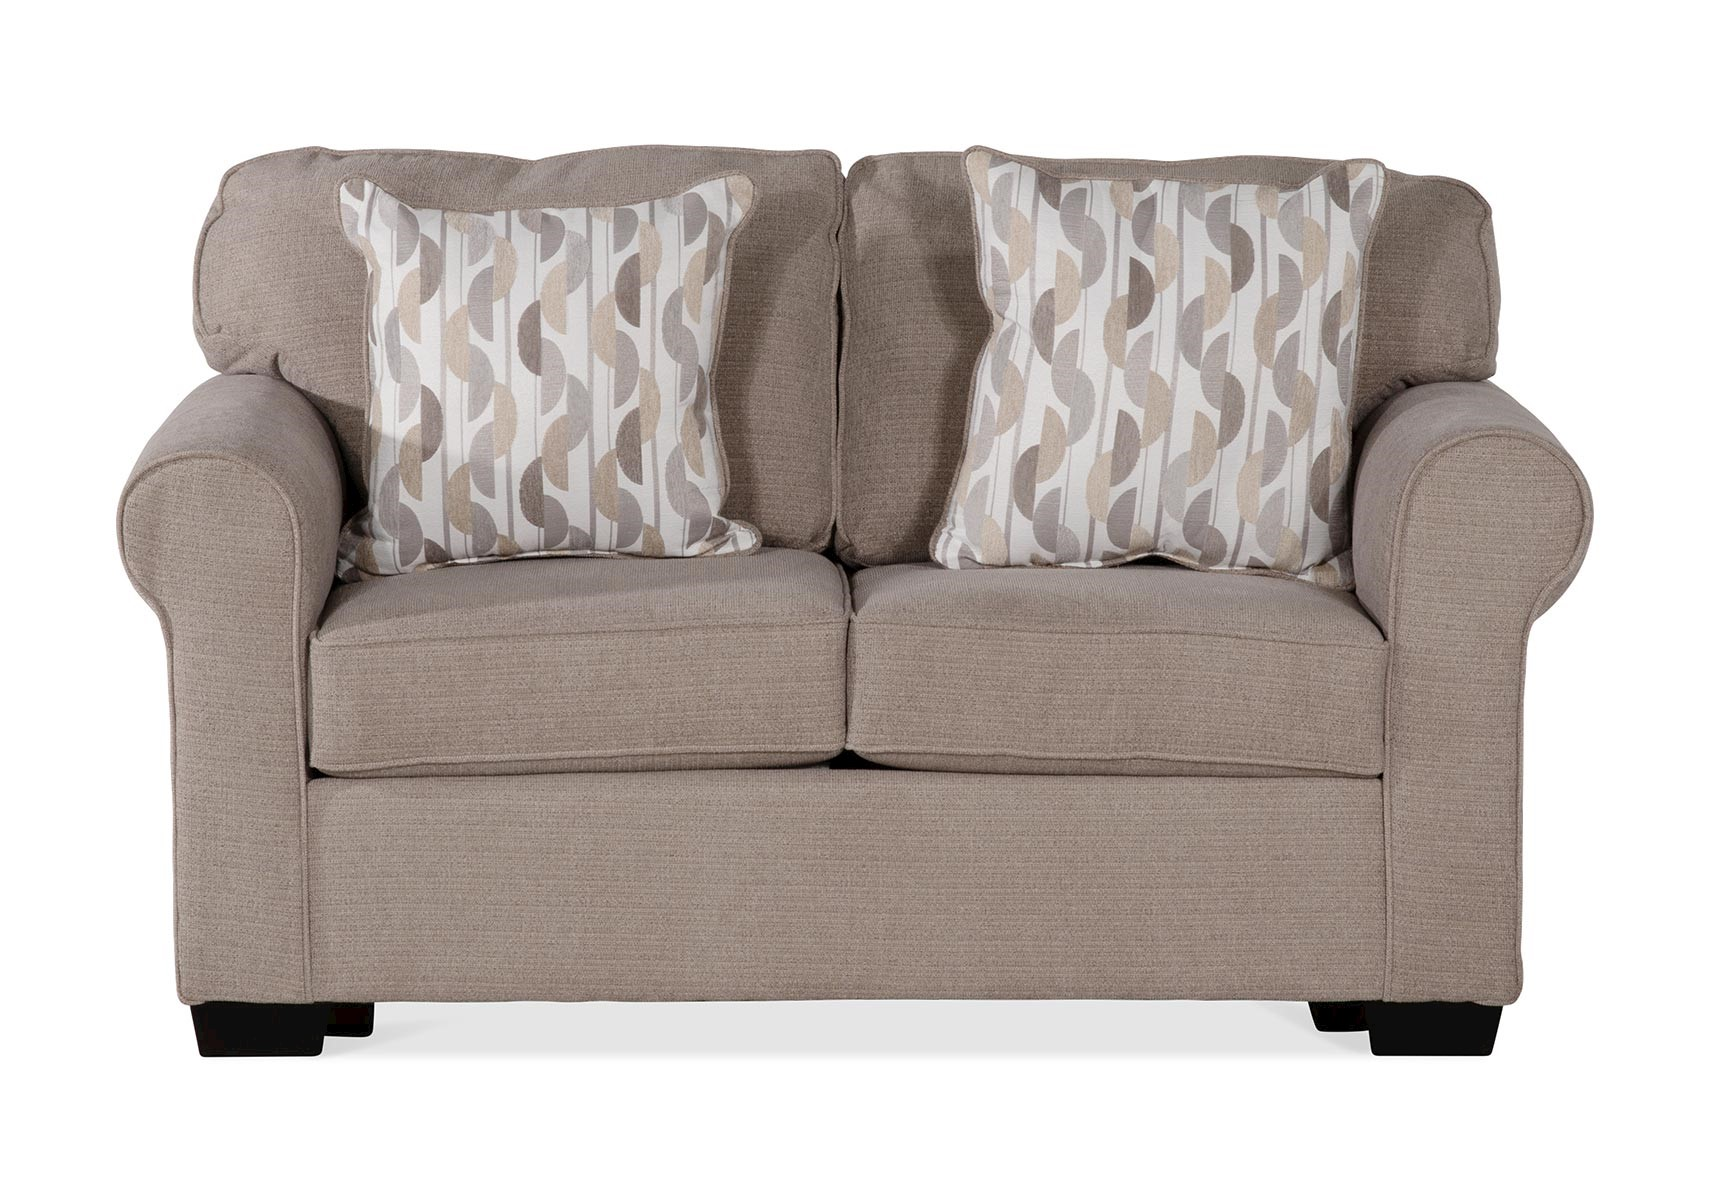 Cool Lacks Bedford Loveseat Pabps2019 Chair Design Images Pabps2019Com